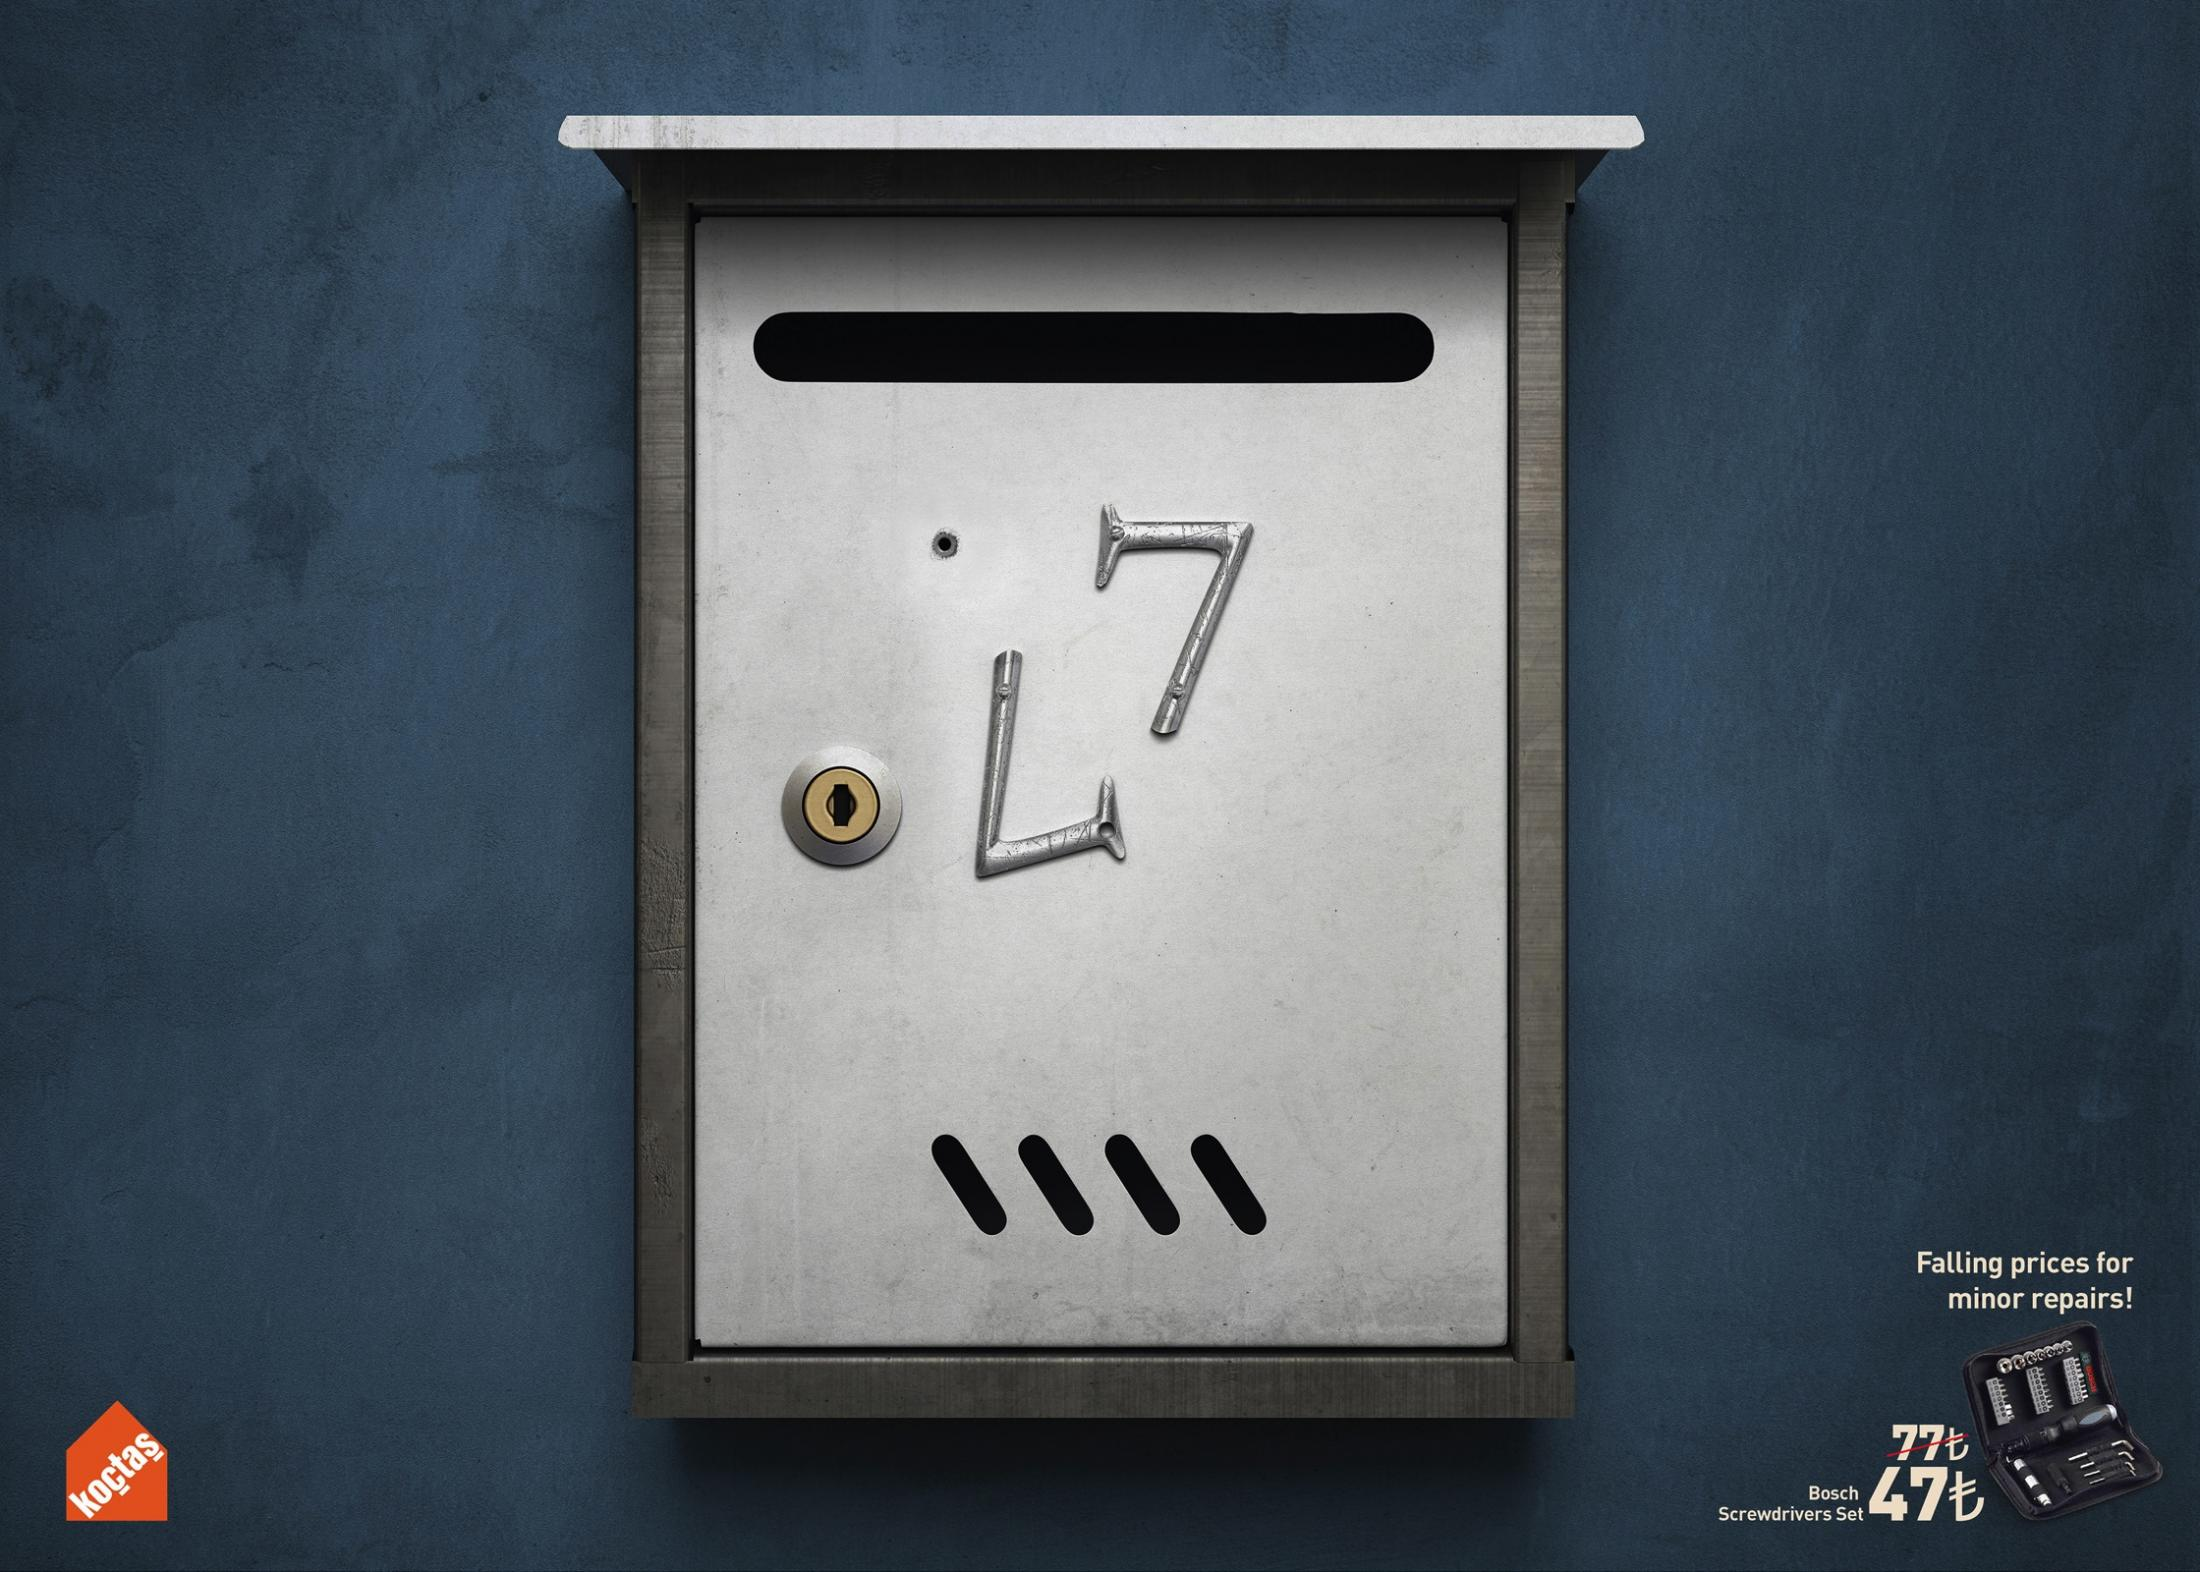 Koctas Print Ad - Falling Prices - Letter Box